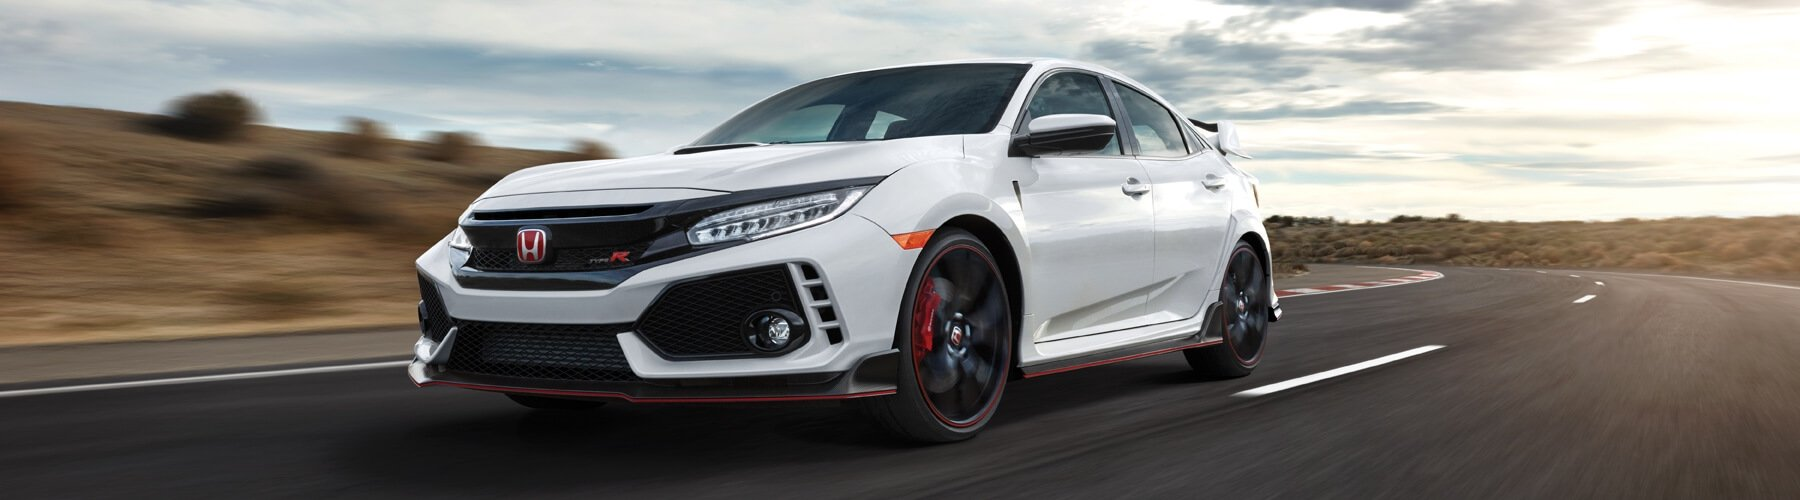 Car Lease Honda Civic Type R